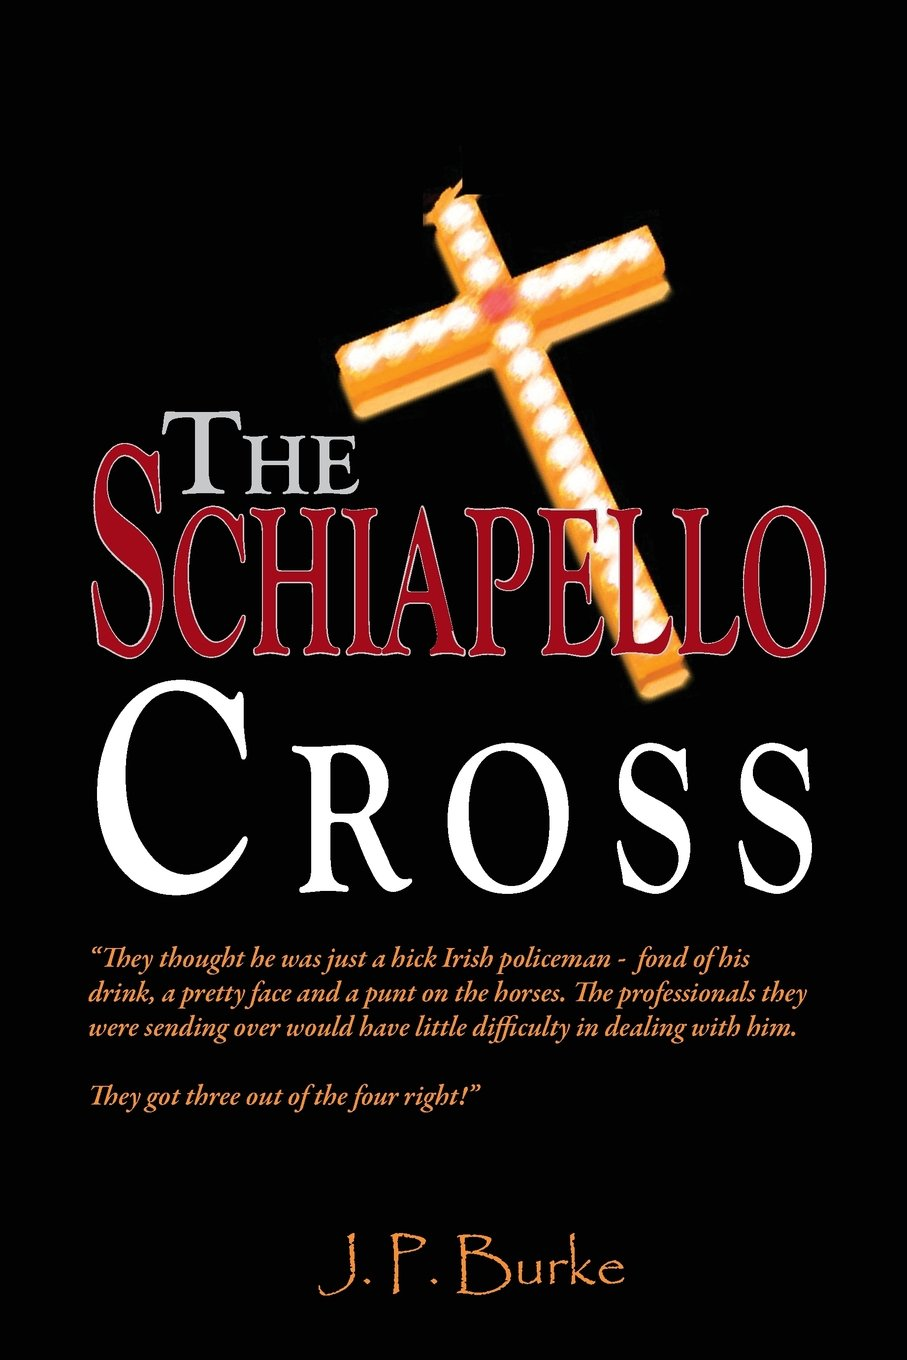 The Schiapello Cross